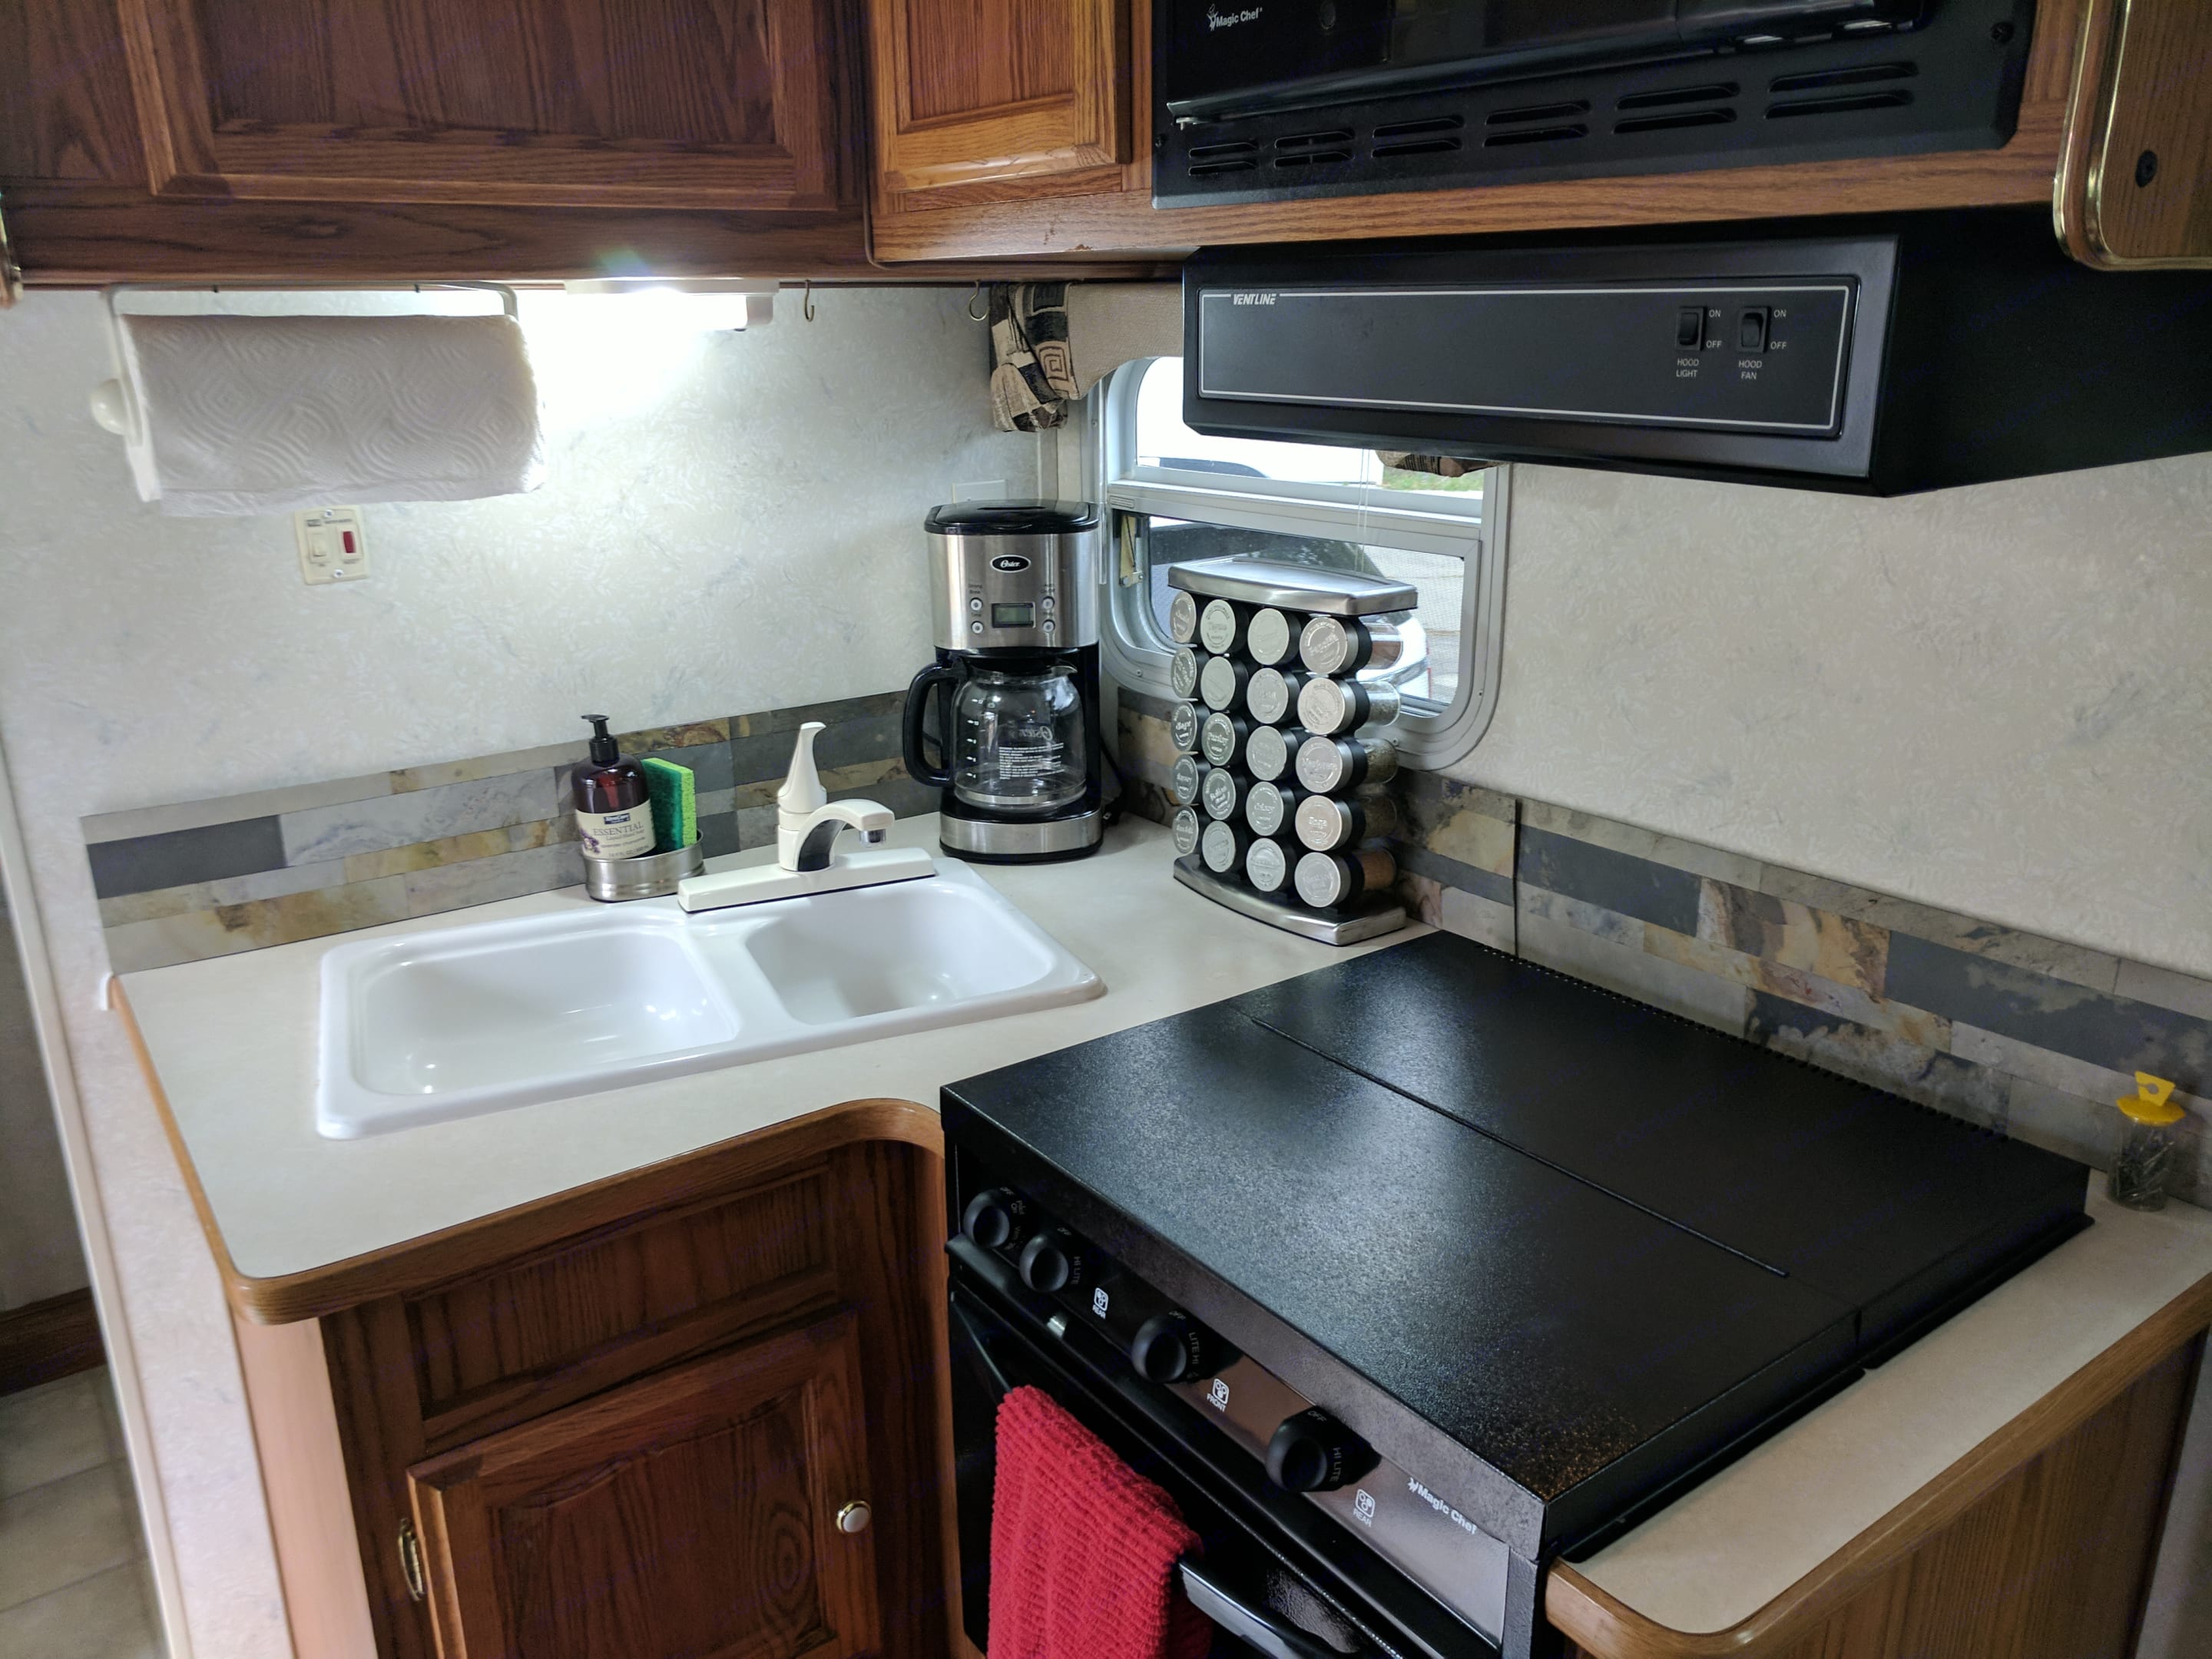 Cooking is a breeze in this fully furnished kitchen with stove, cooktop and microwave! . Forest River Sandpiper 2003